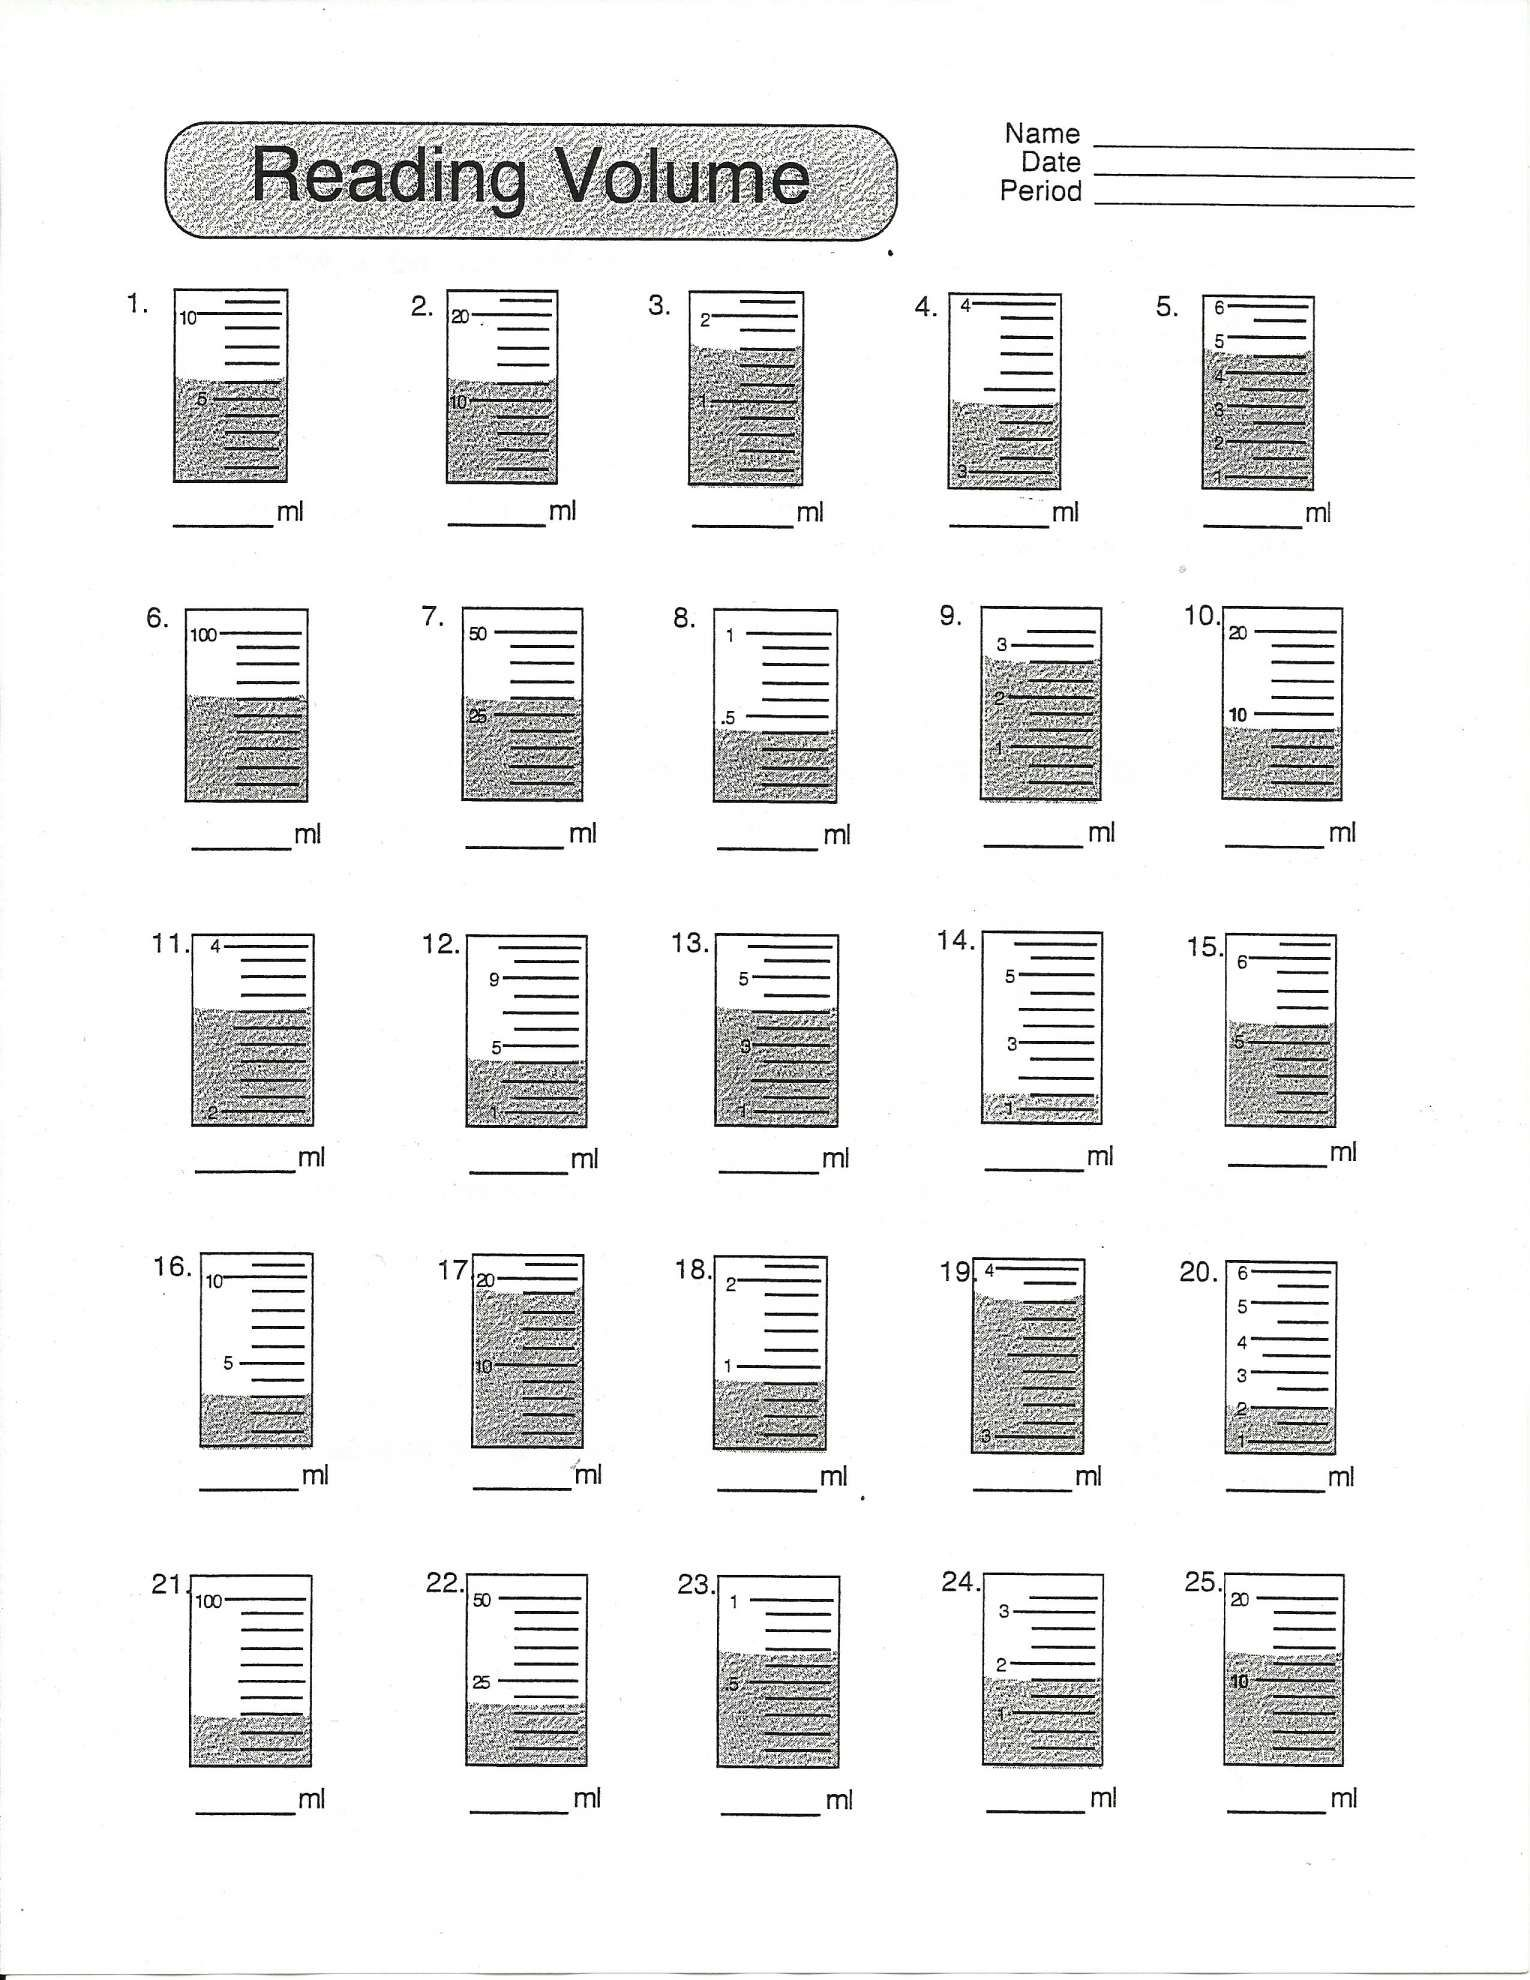 9 Reading Volume Worksheet Answer Key